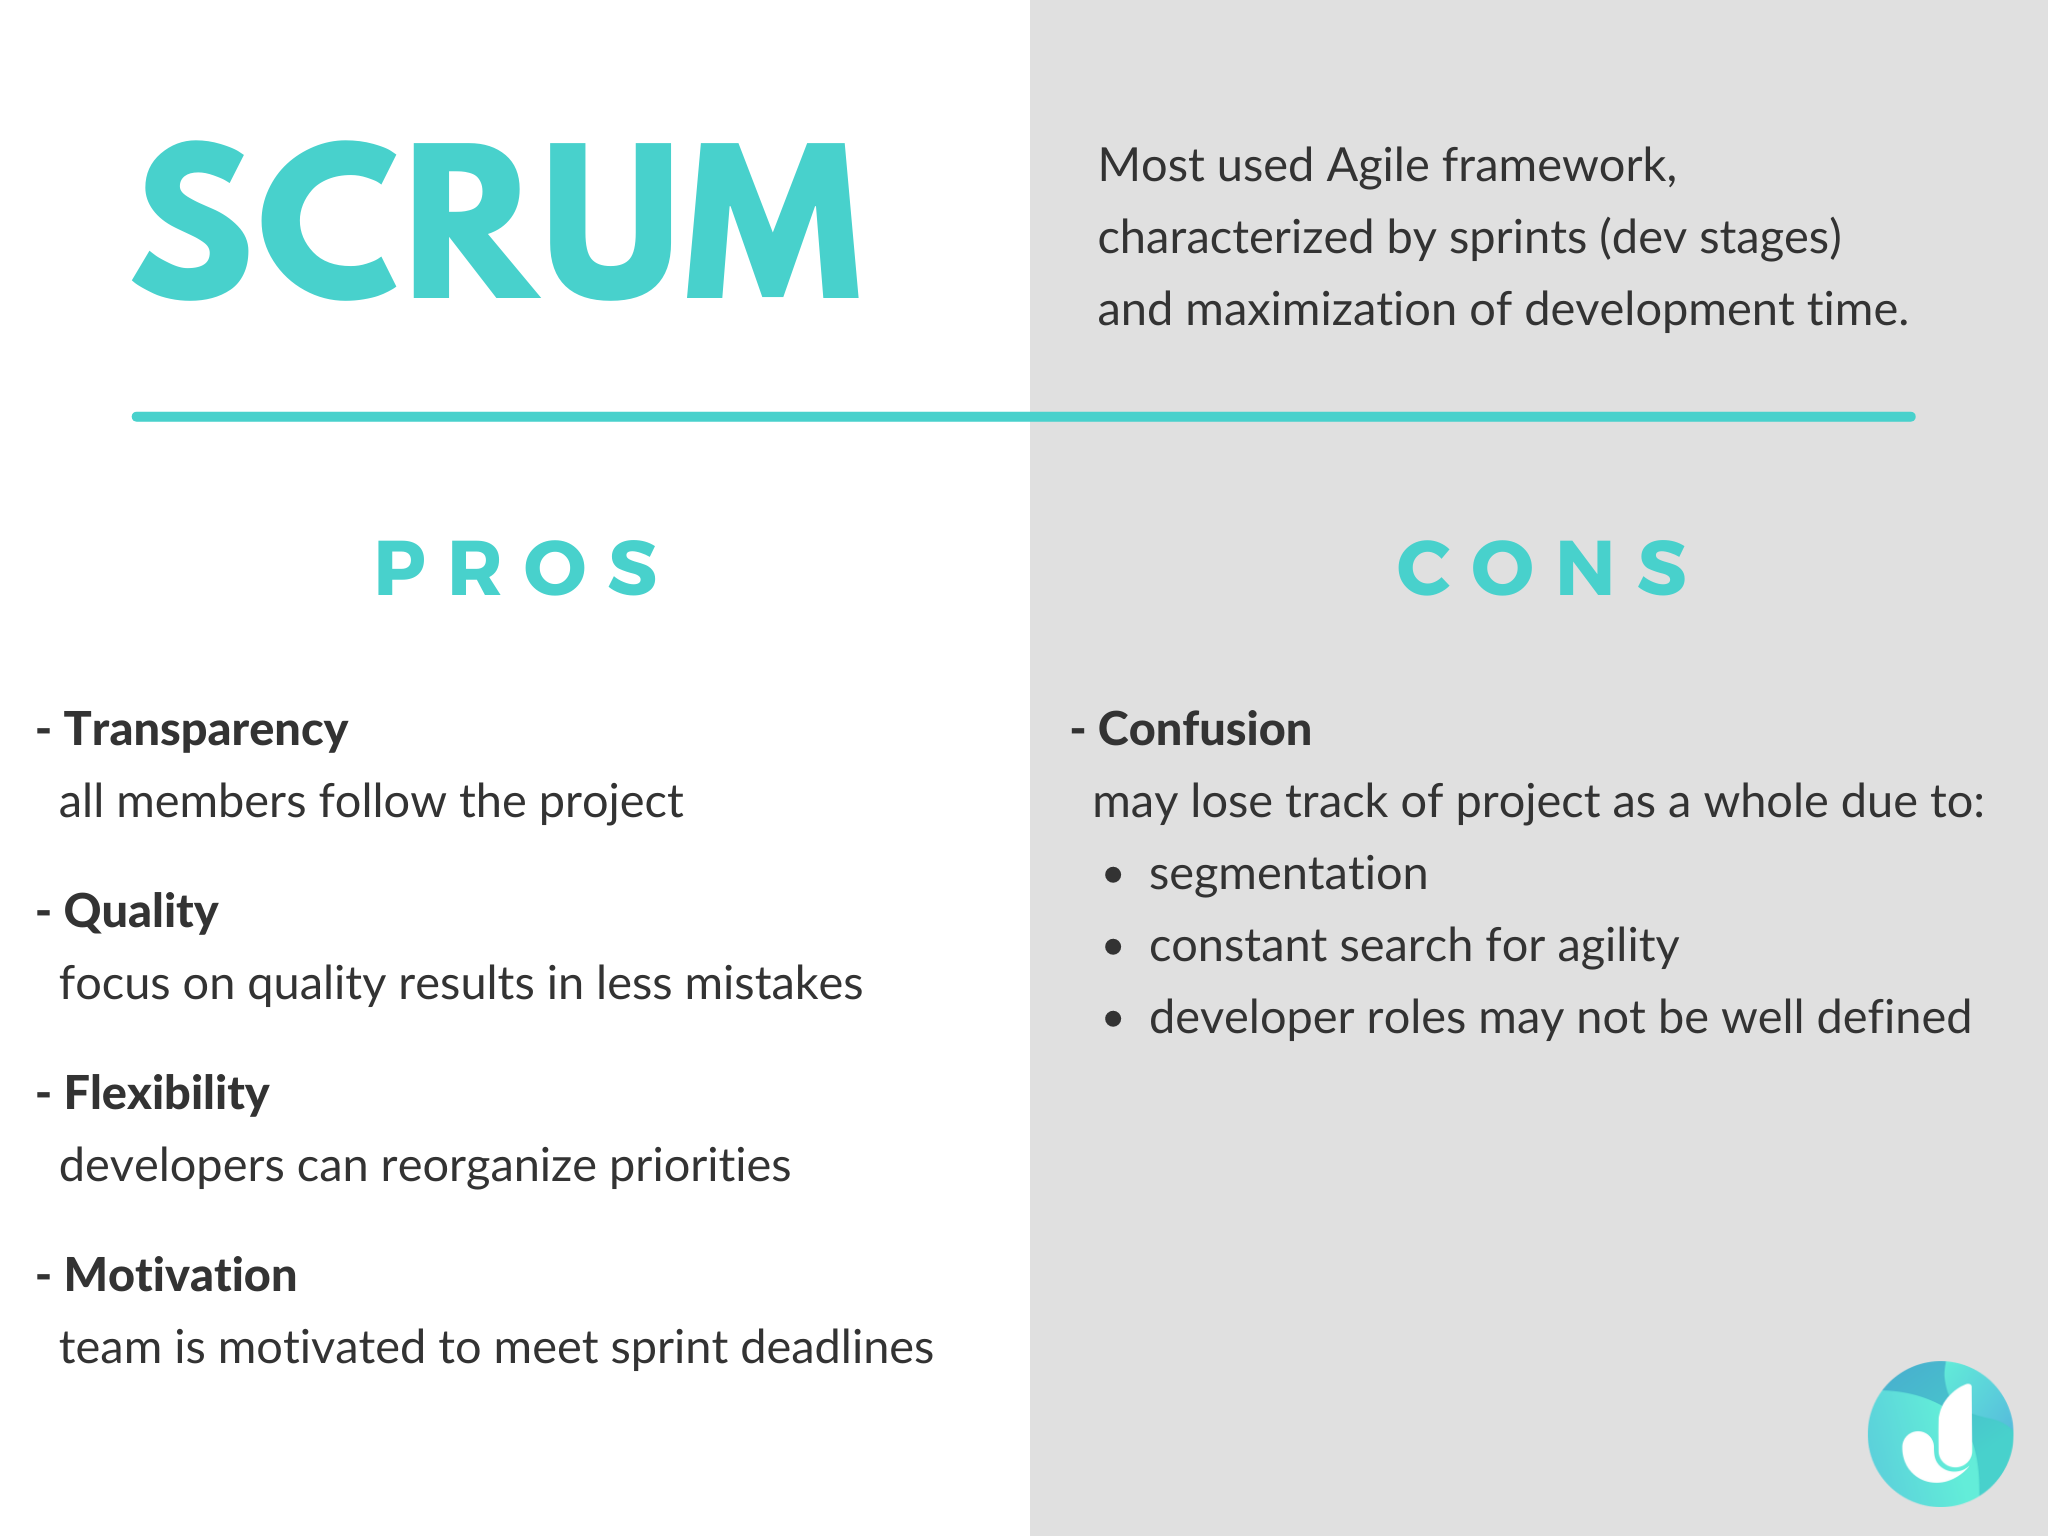 The pros and cons of Scrum Agile Methodology